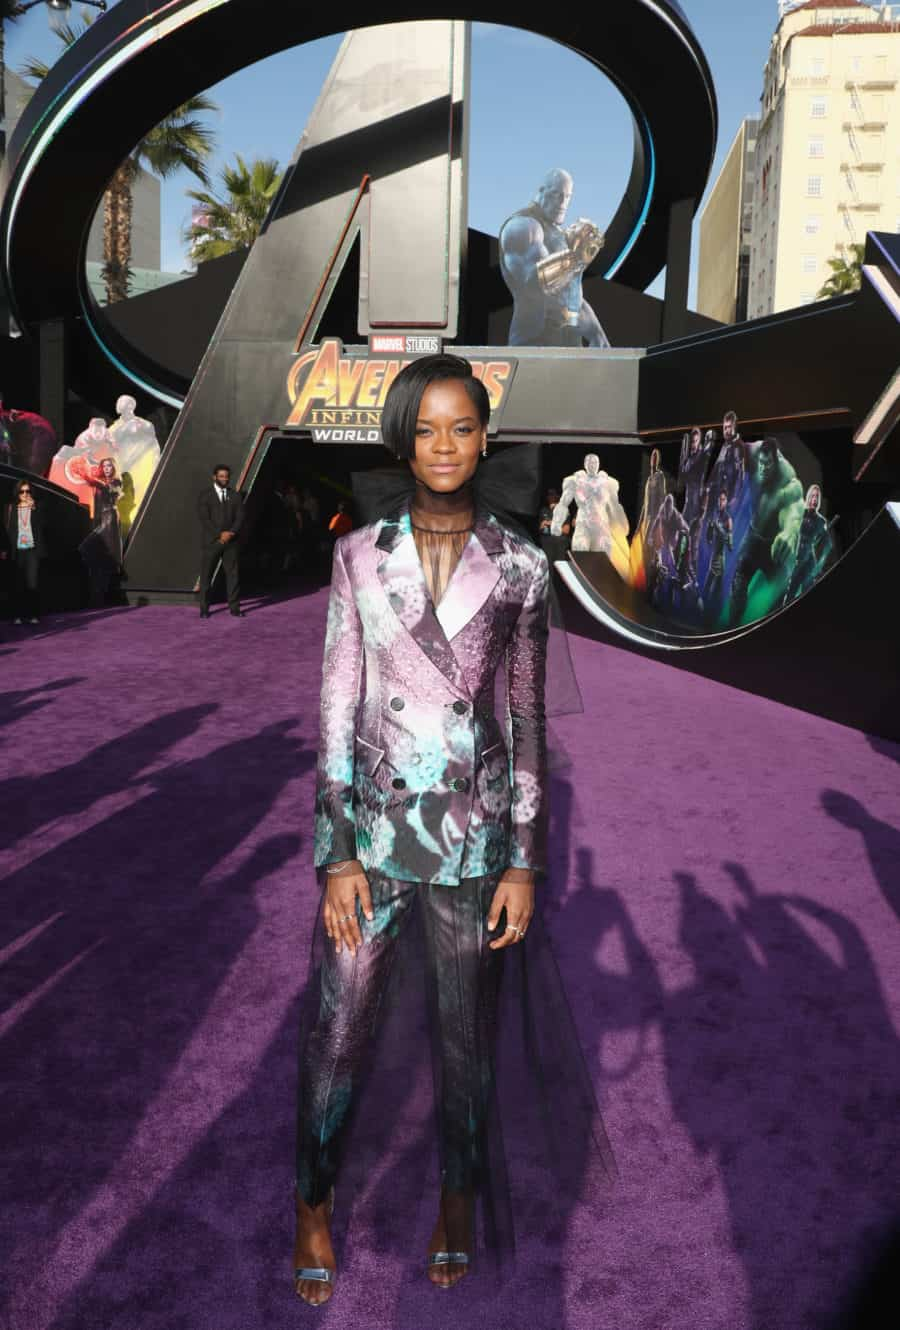 HOLLYWOOD, CA - APRIL 23:  Letitia Wright attends the Los Angeles Global Premiere for Marvel Studios' Avengers: Infinity War on April 23, 2018 in Hollywood, California.  (Photo by Rich Polk/Getty Images for Disney) *** Local Caption *** Letitia Wright